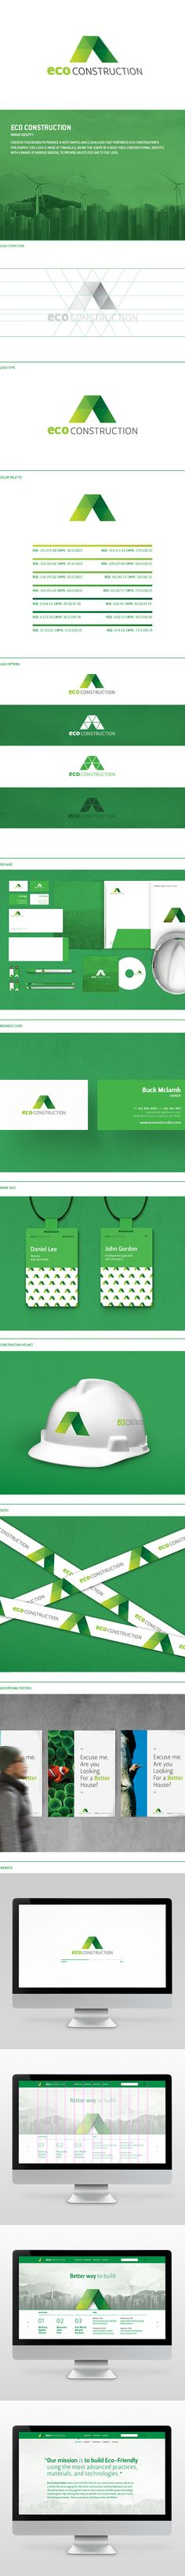 Eco Construction by Jasung Gu, via Behance #branding #graphicdesign